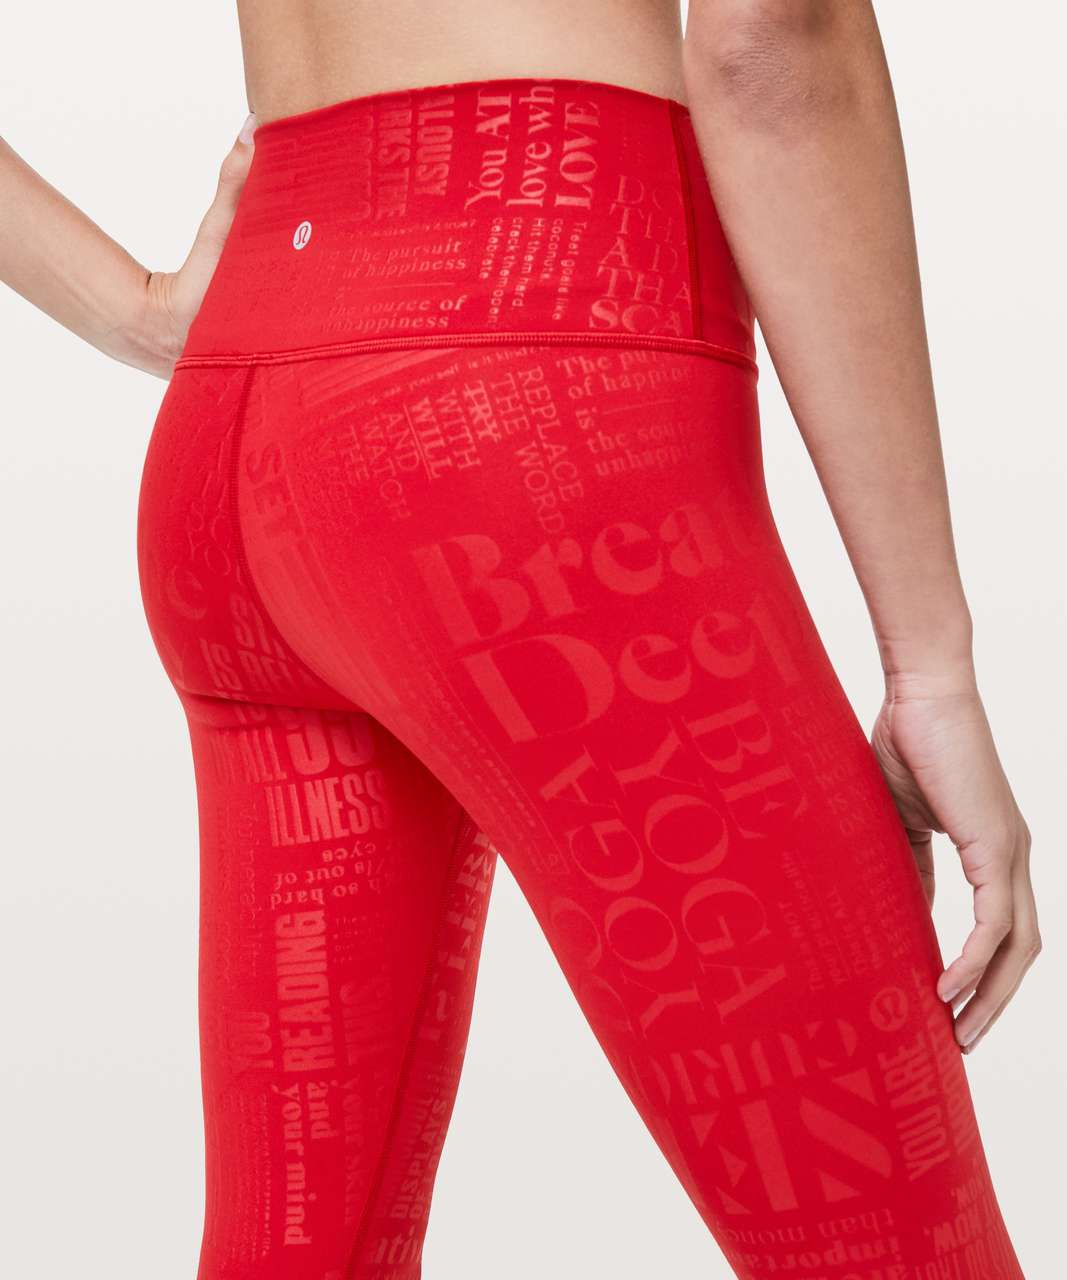 "Lululemon Wunder Under Hi-Rise 7/8 Tight *20Y Collection 25"" - 20YR Manifesto Embossed Dark Red"